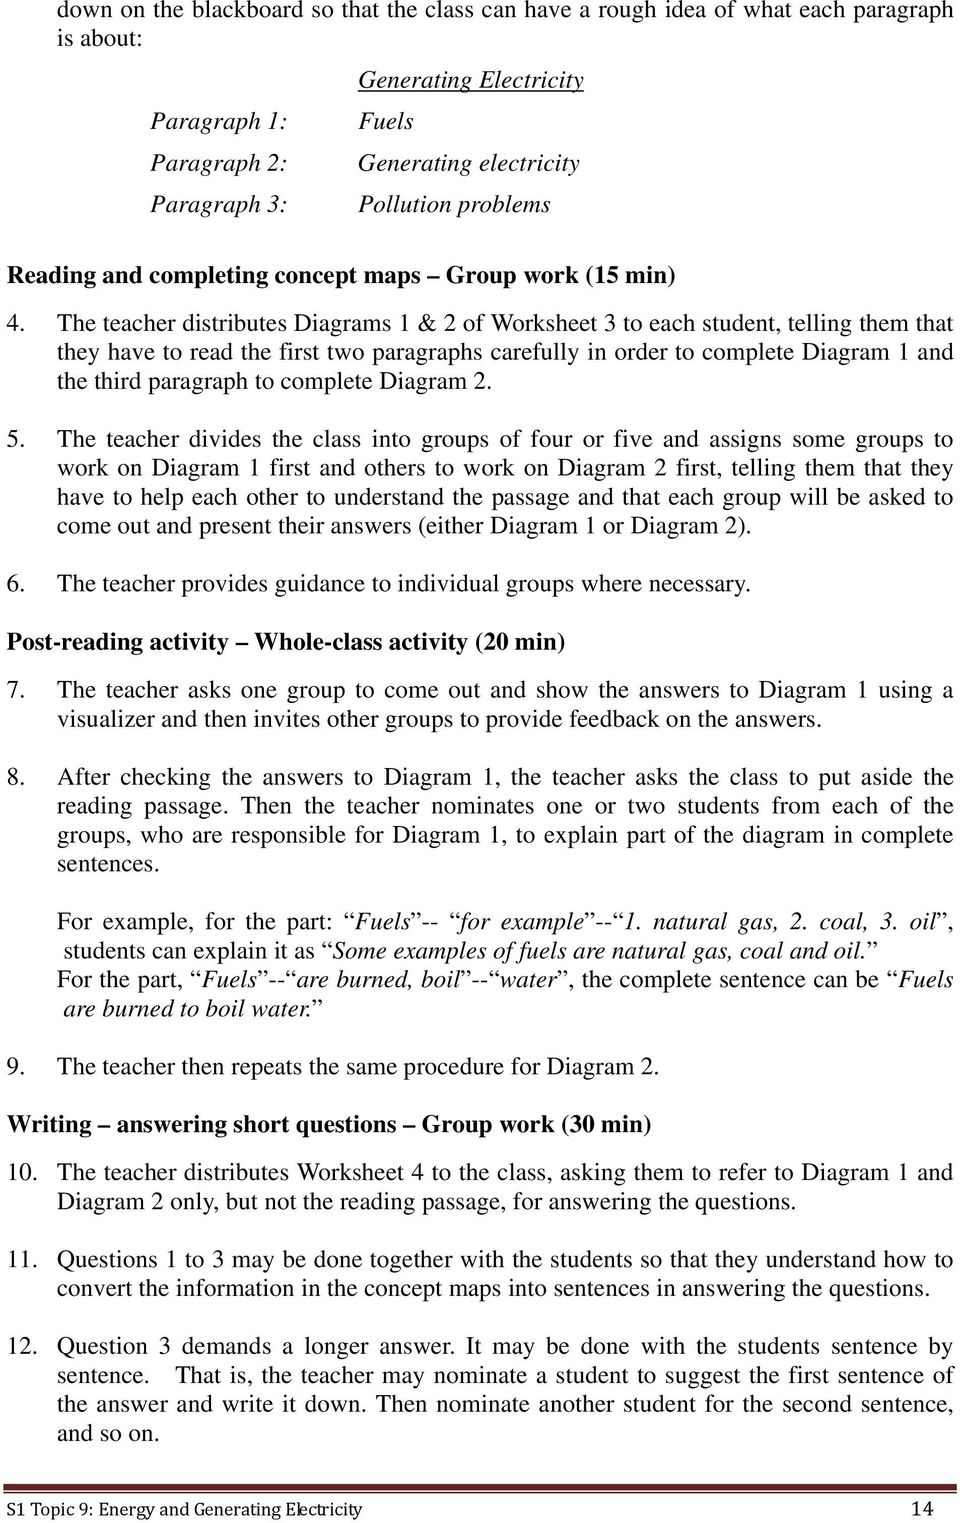 Pictures Kinetic Energy Problems Worksheet Beatlesblogcarnival – Energy Worksheet Answers